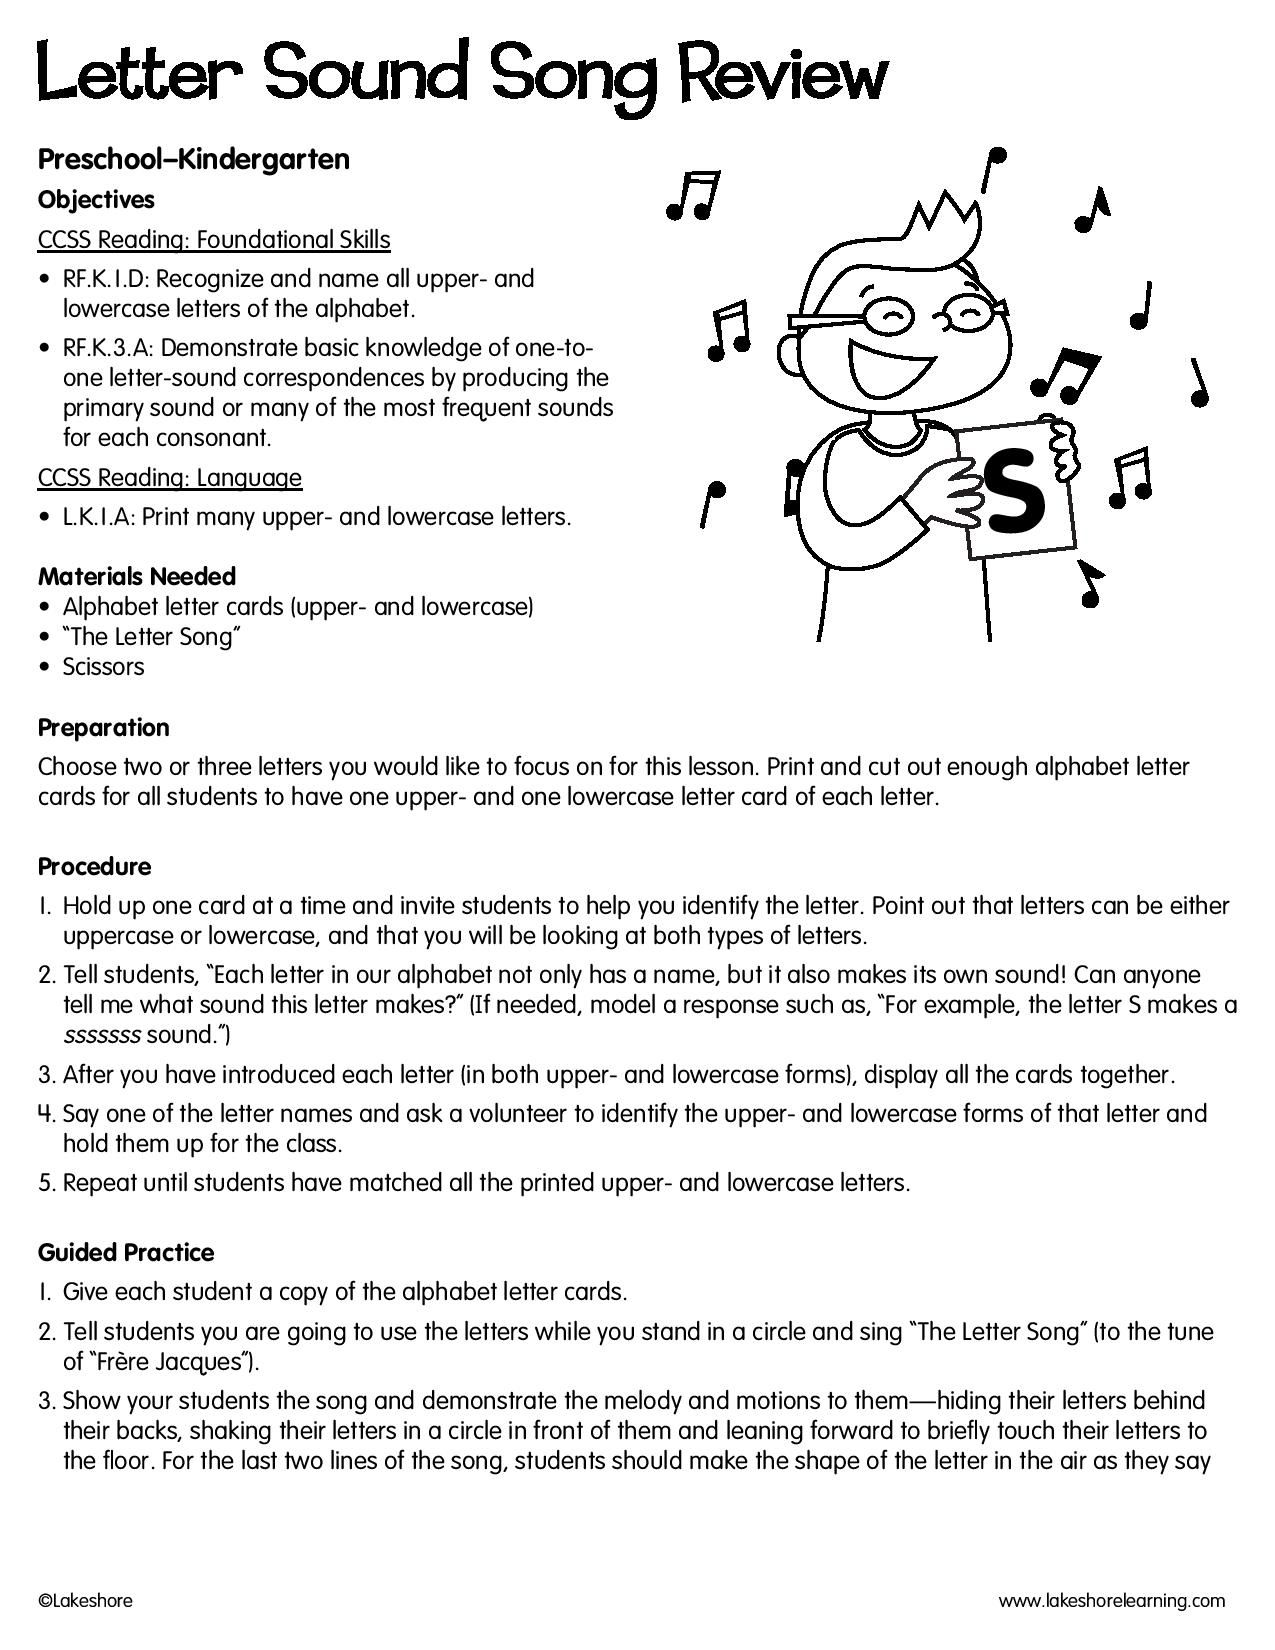 Letter Sound Song Review lessonplan Letter sound song